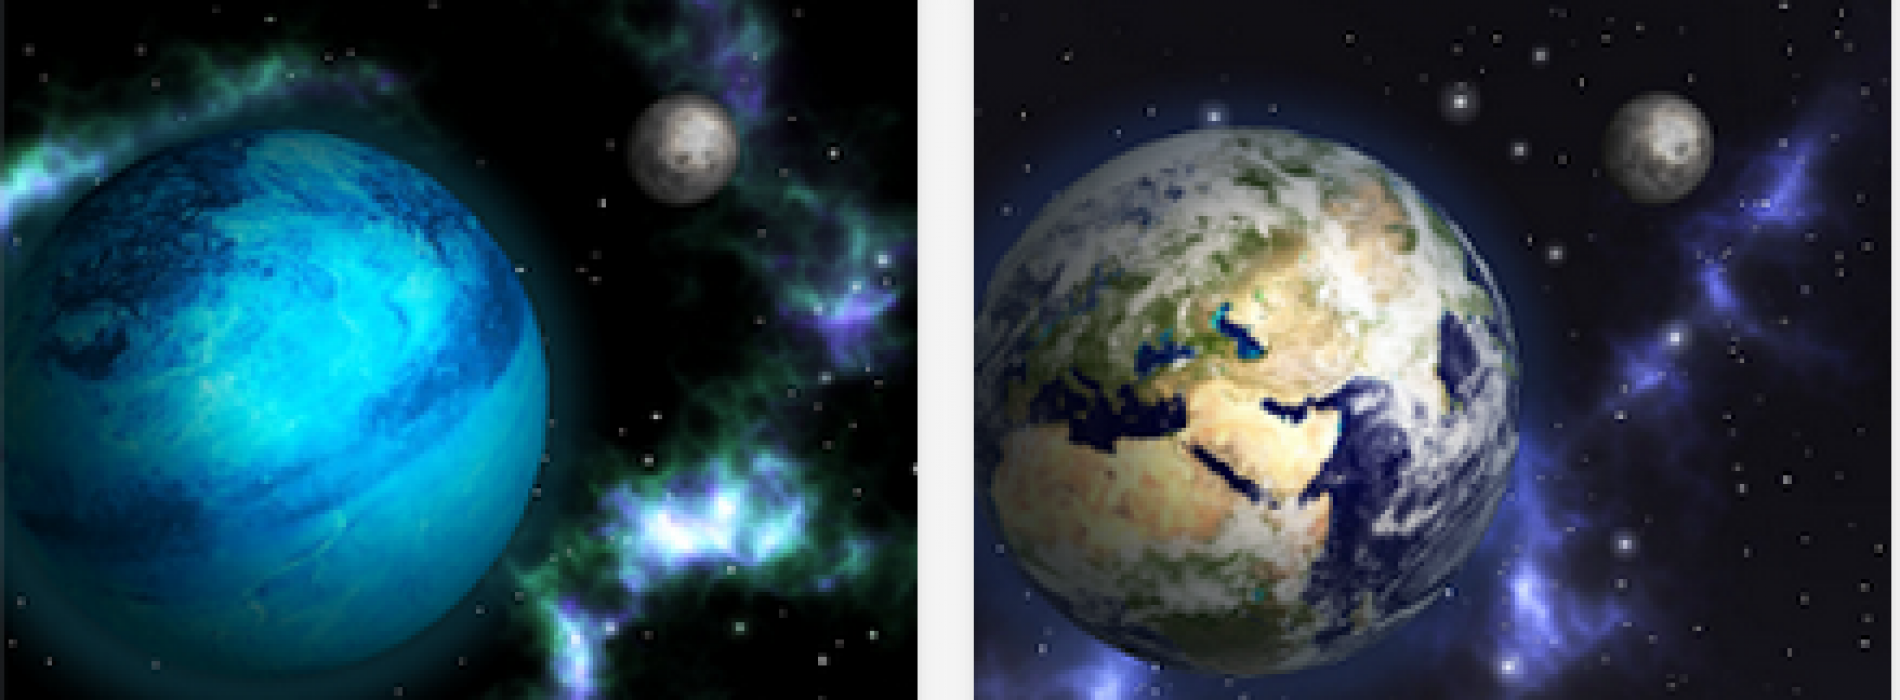 Enjoy the beauties of space with GyroSpace 3D Live Wallpaper